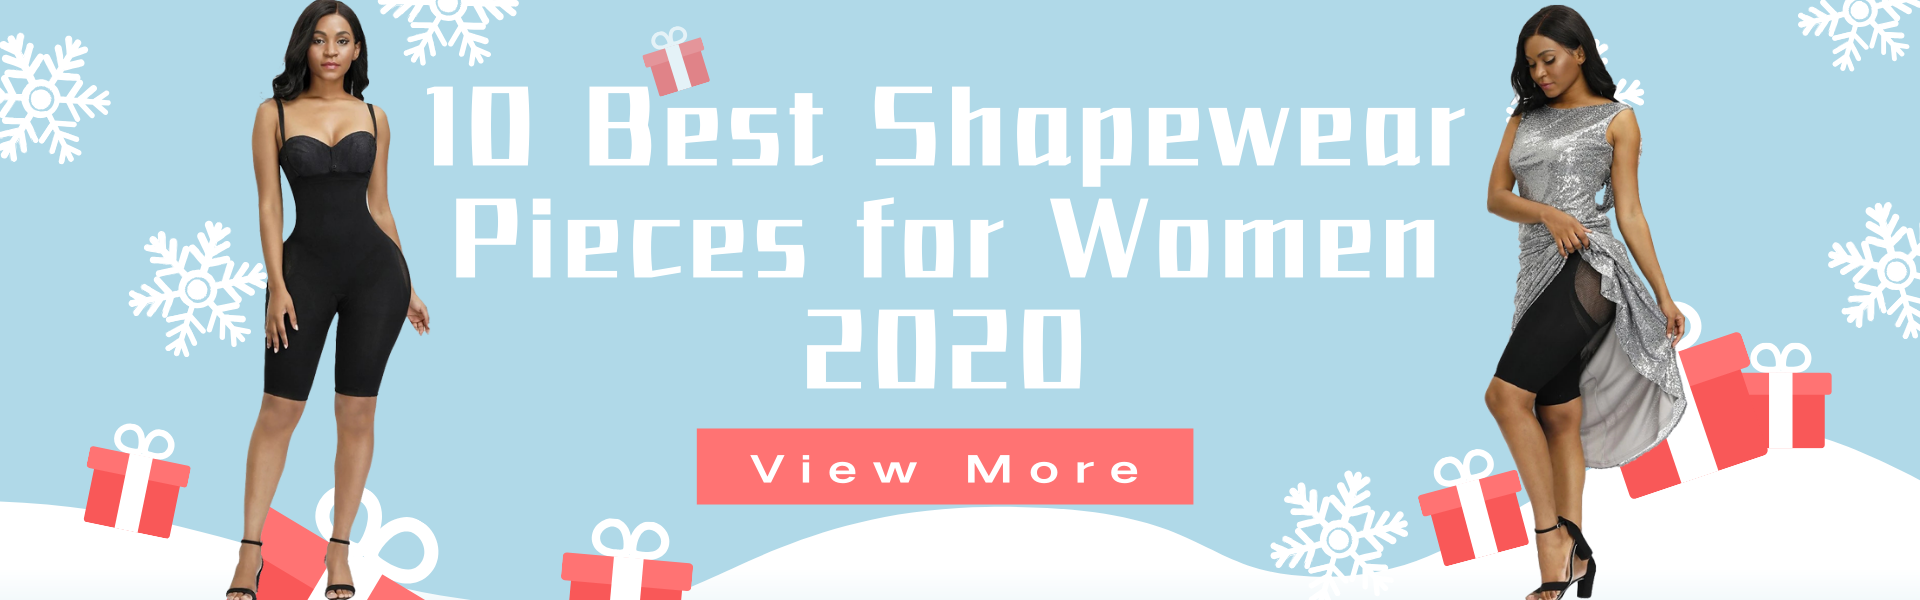 10 Best Shapewear Pieces for Women 2020